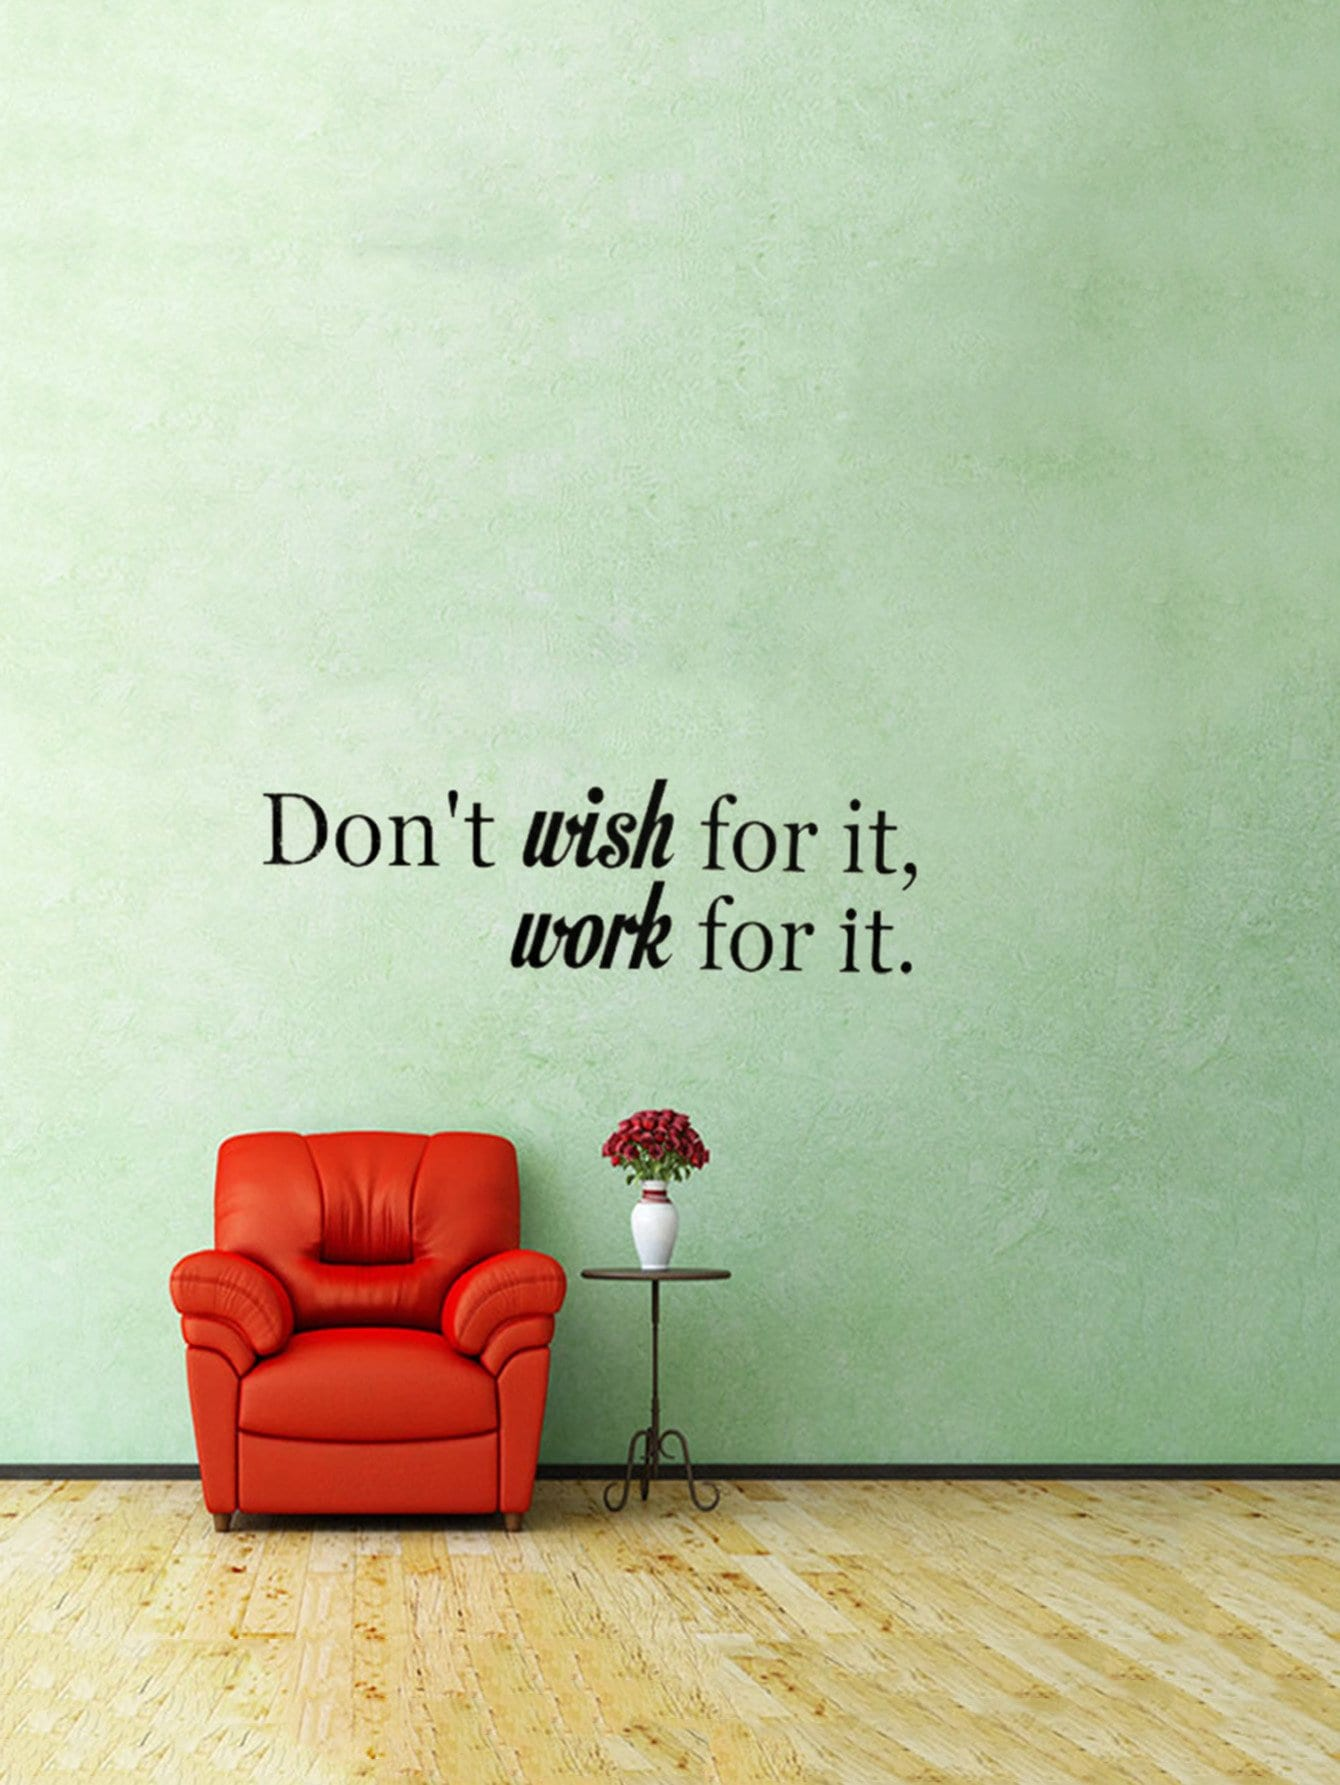 Inspirational Motto Decor Wall Sticker motto wall sticker